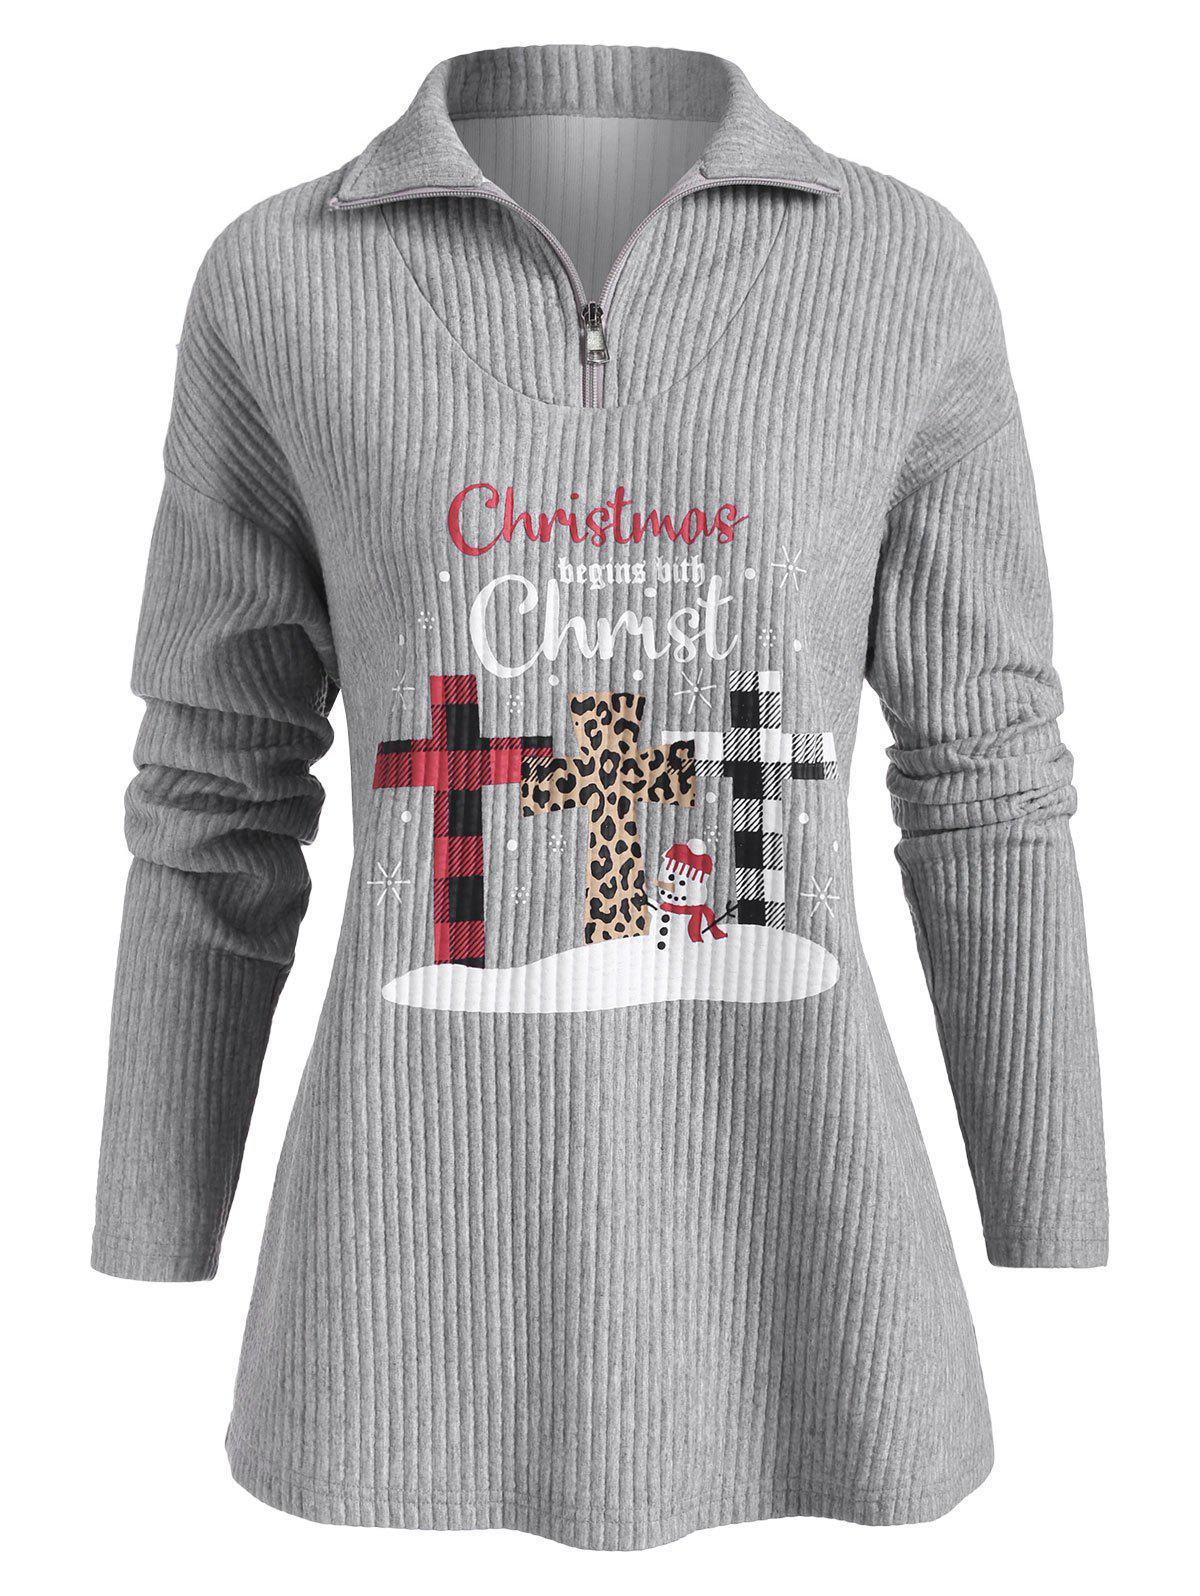 Quarter Zip Chirstmas Snowman Christ Graphic Sweatshirt - GRAY 2XL